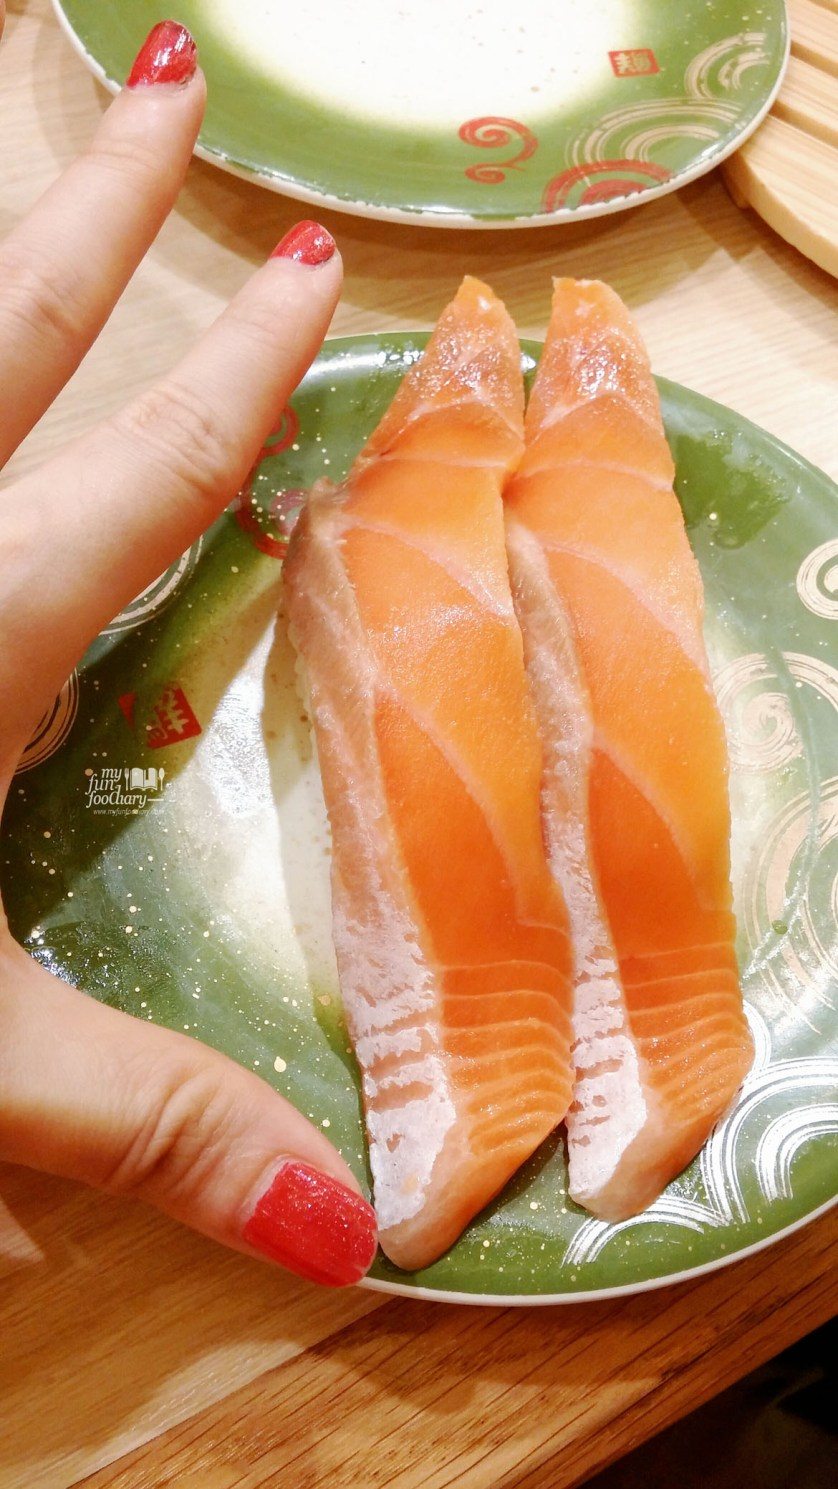 Long Salmon Size for my Salmon Sushi at Toriton Kaitensushi